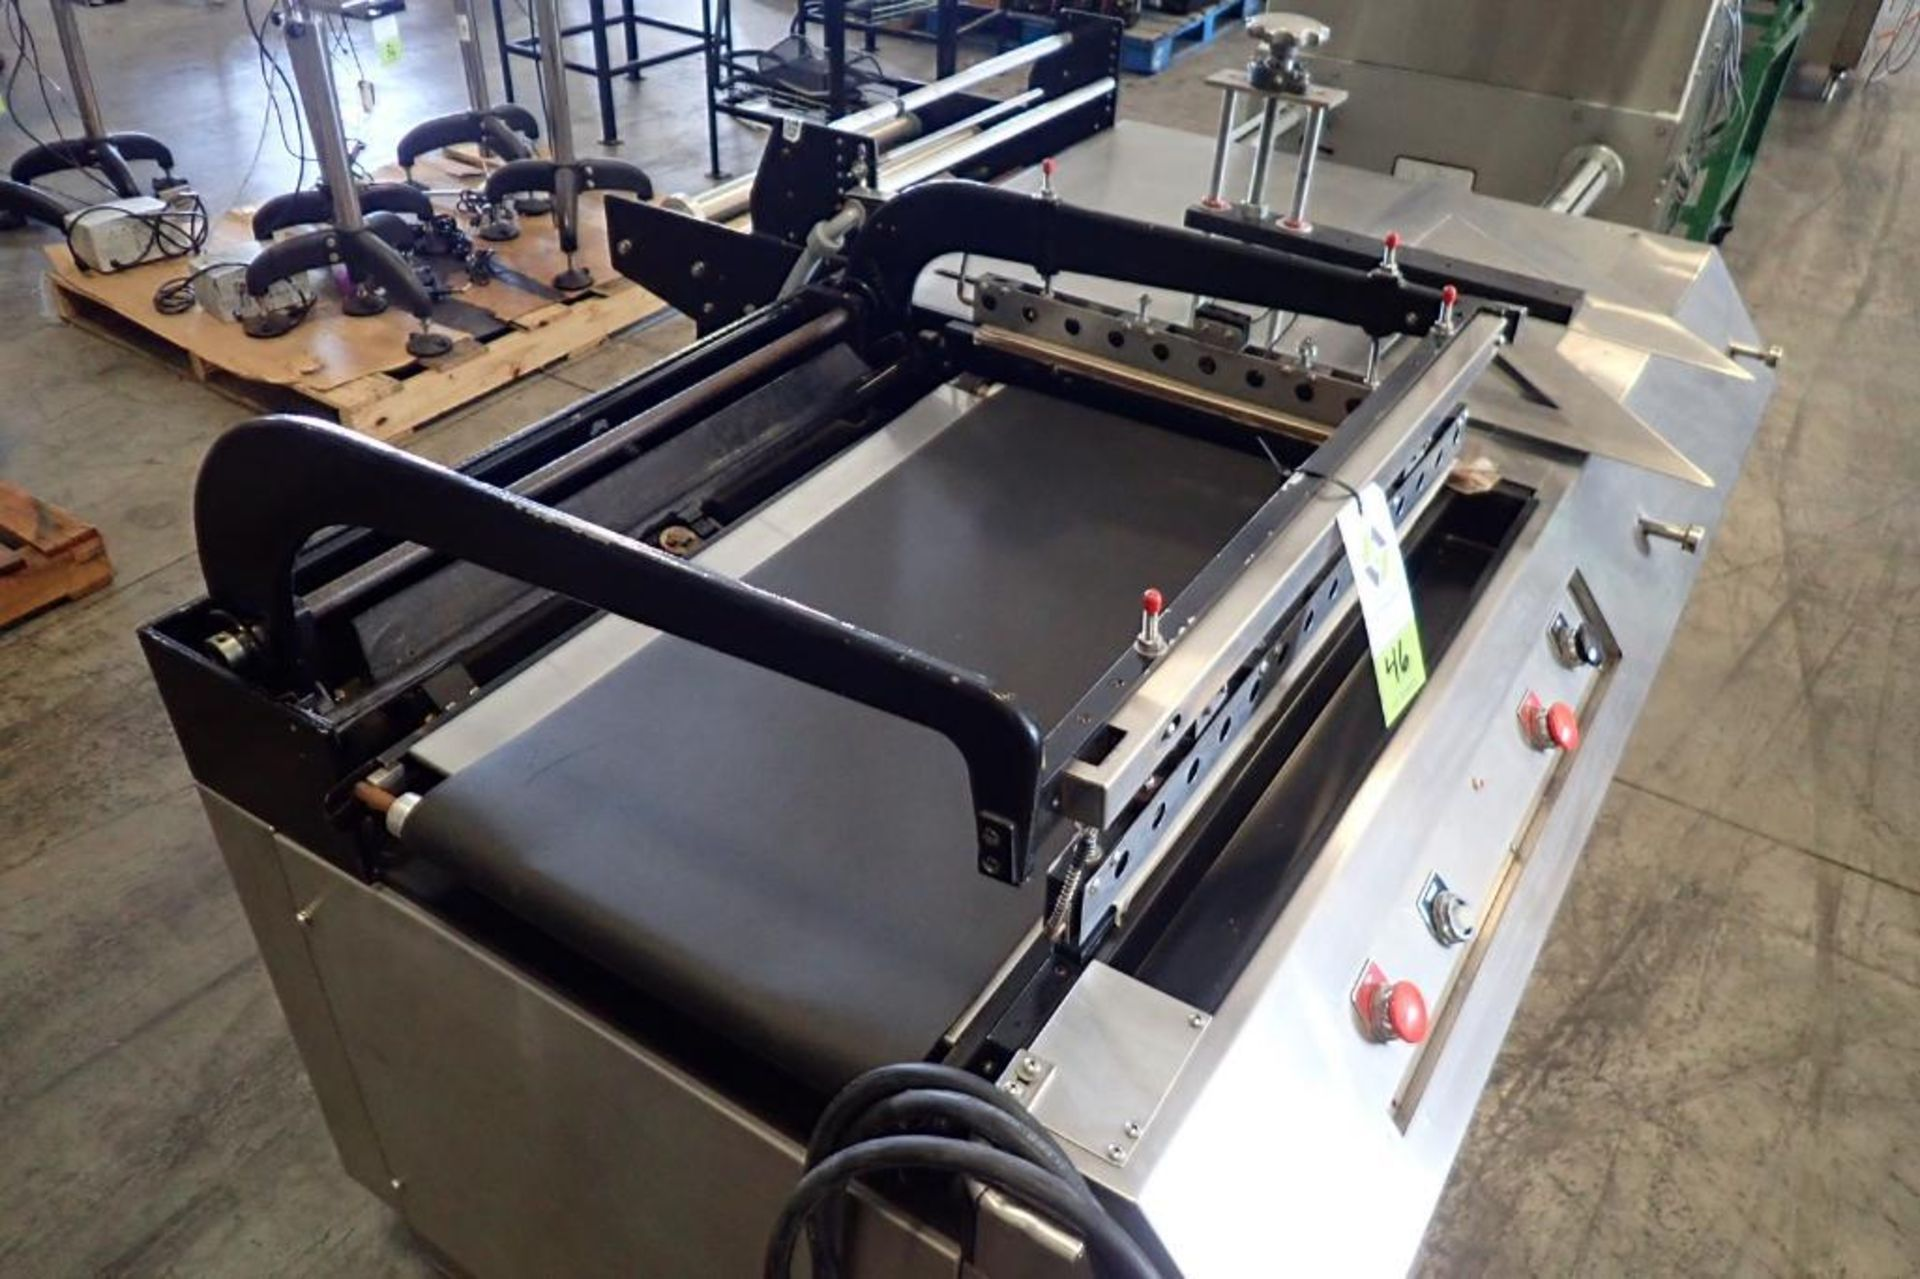 Lot 46 - L-bar sealer, 16 in. wide belt, 28 in. long x 20 in. wide seal, 24 in. wide film stand, variable